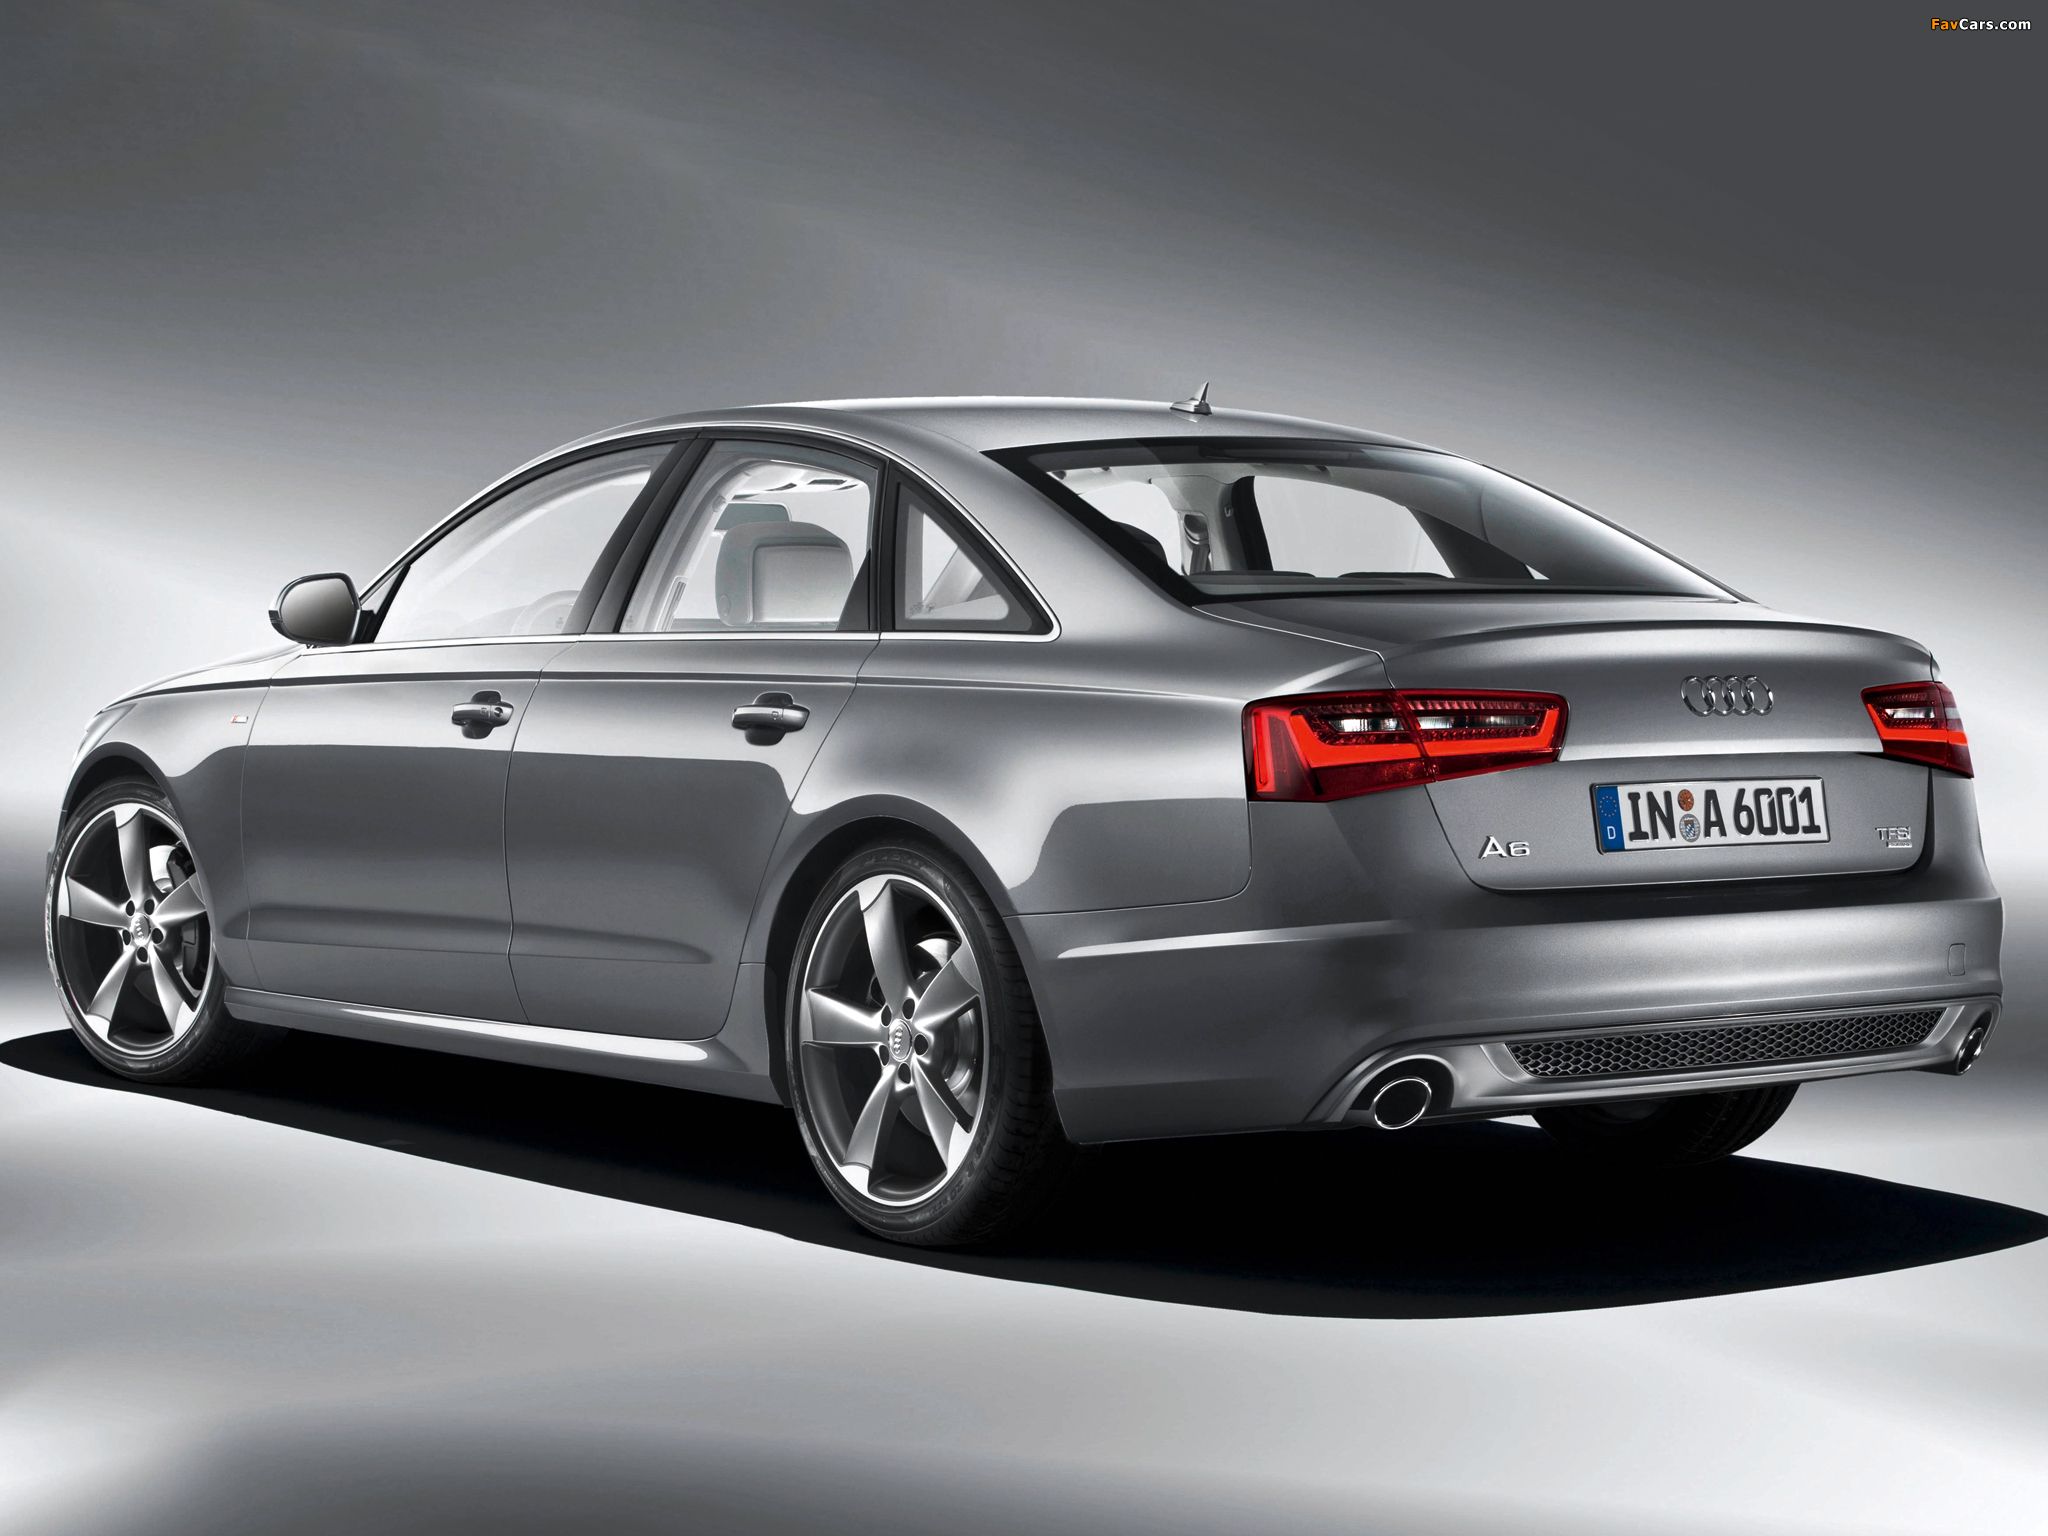 Pictures Of Audi A6 3 0t S Line Sedan 4g C7 2011 2048x1536